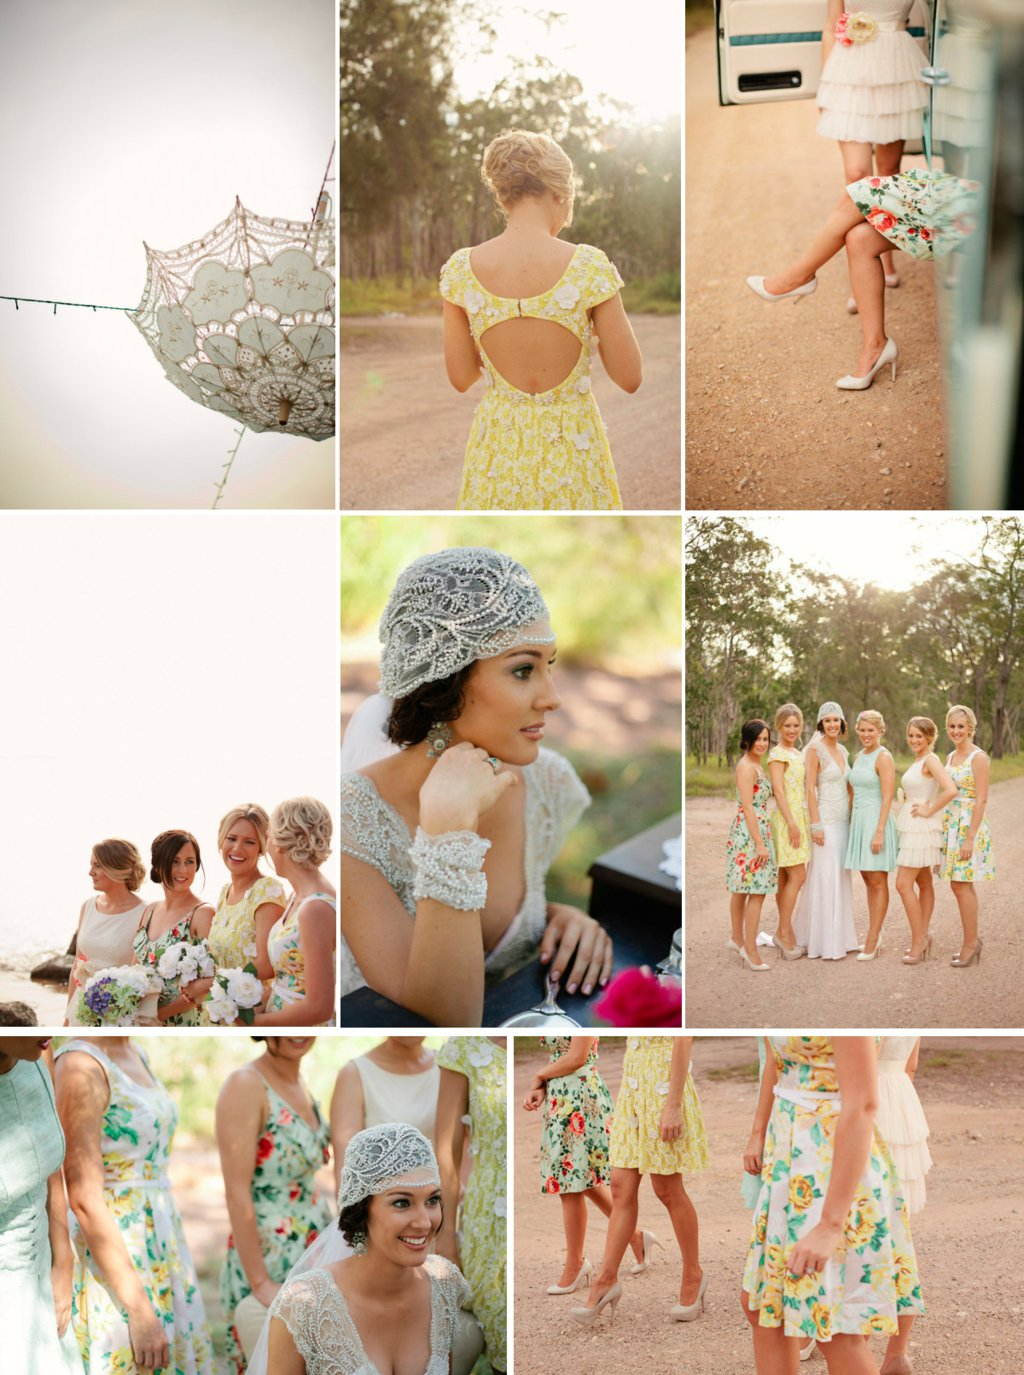 Country-chic-outdoor-wedding-bride-in-lace-wedding-dress-floral-printed-bridesmaid-dresses.full